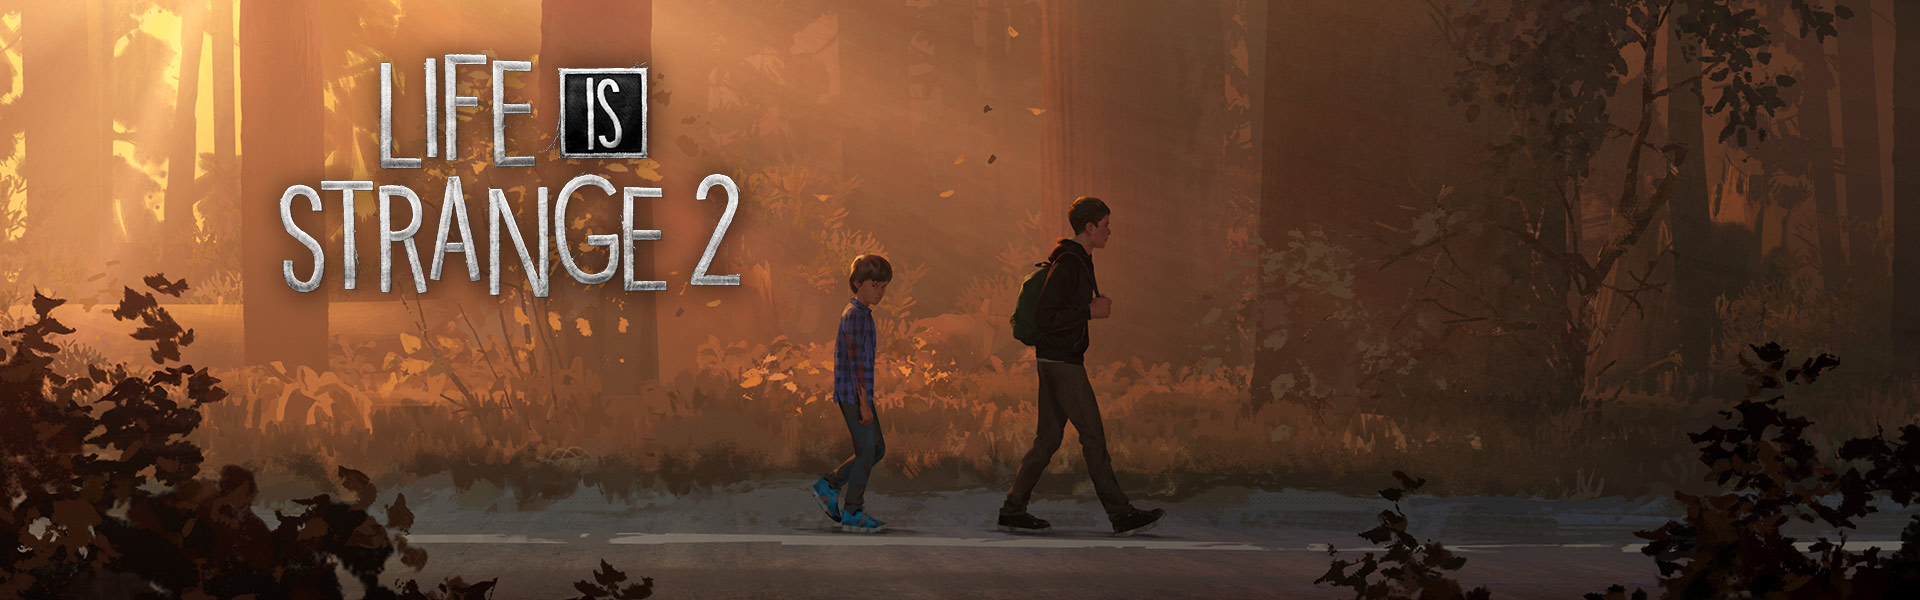 Life is Strange 2, Two brothers walk down a road through a forest in Seattle